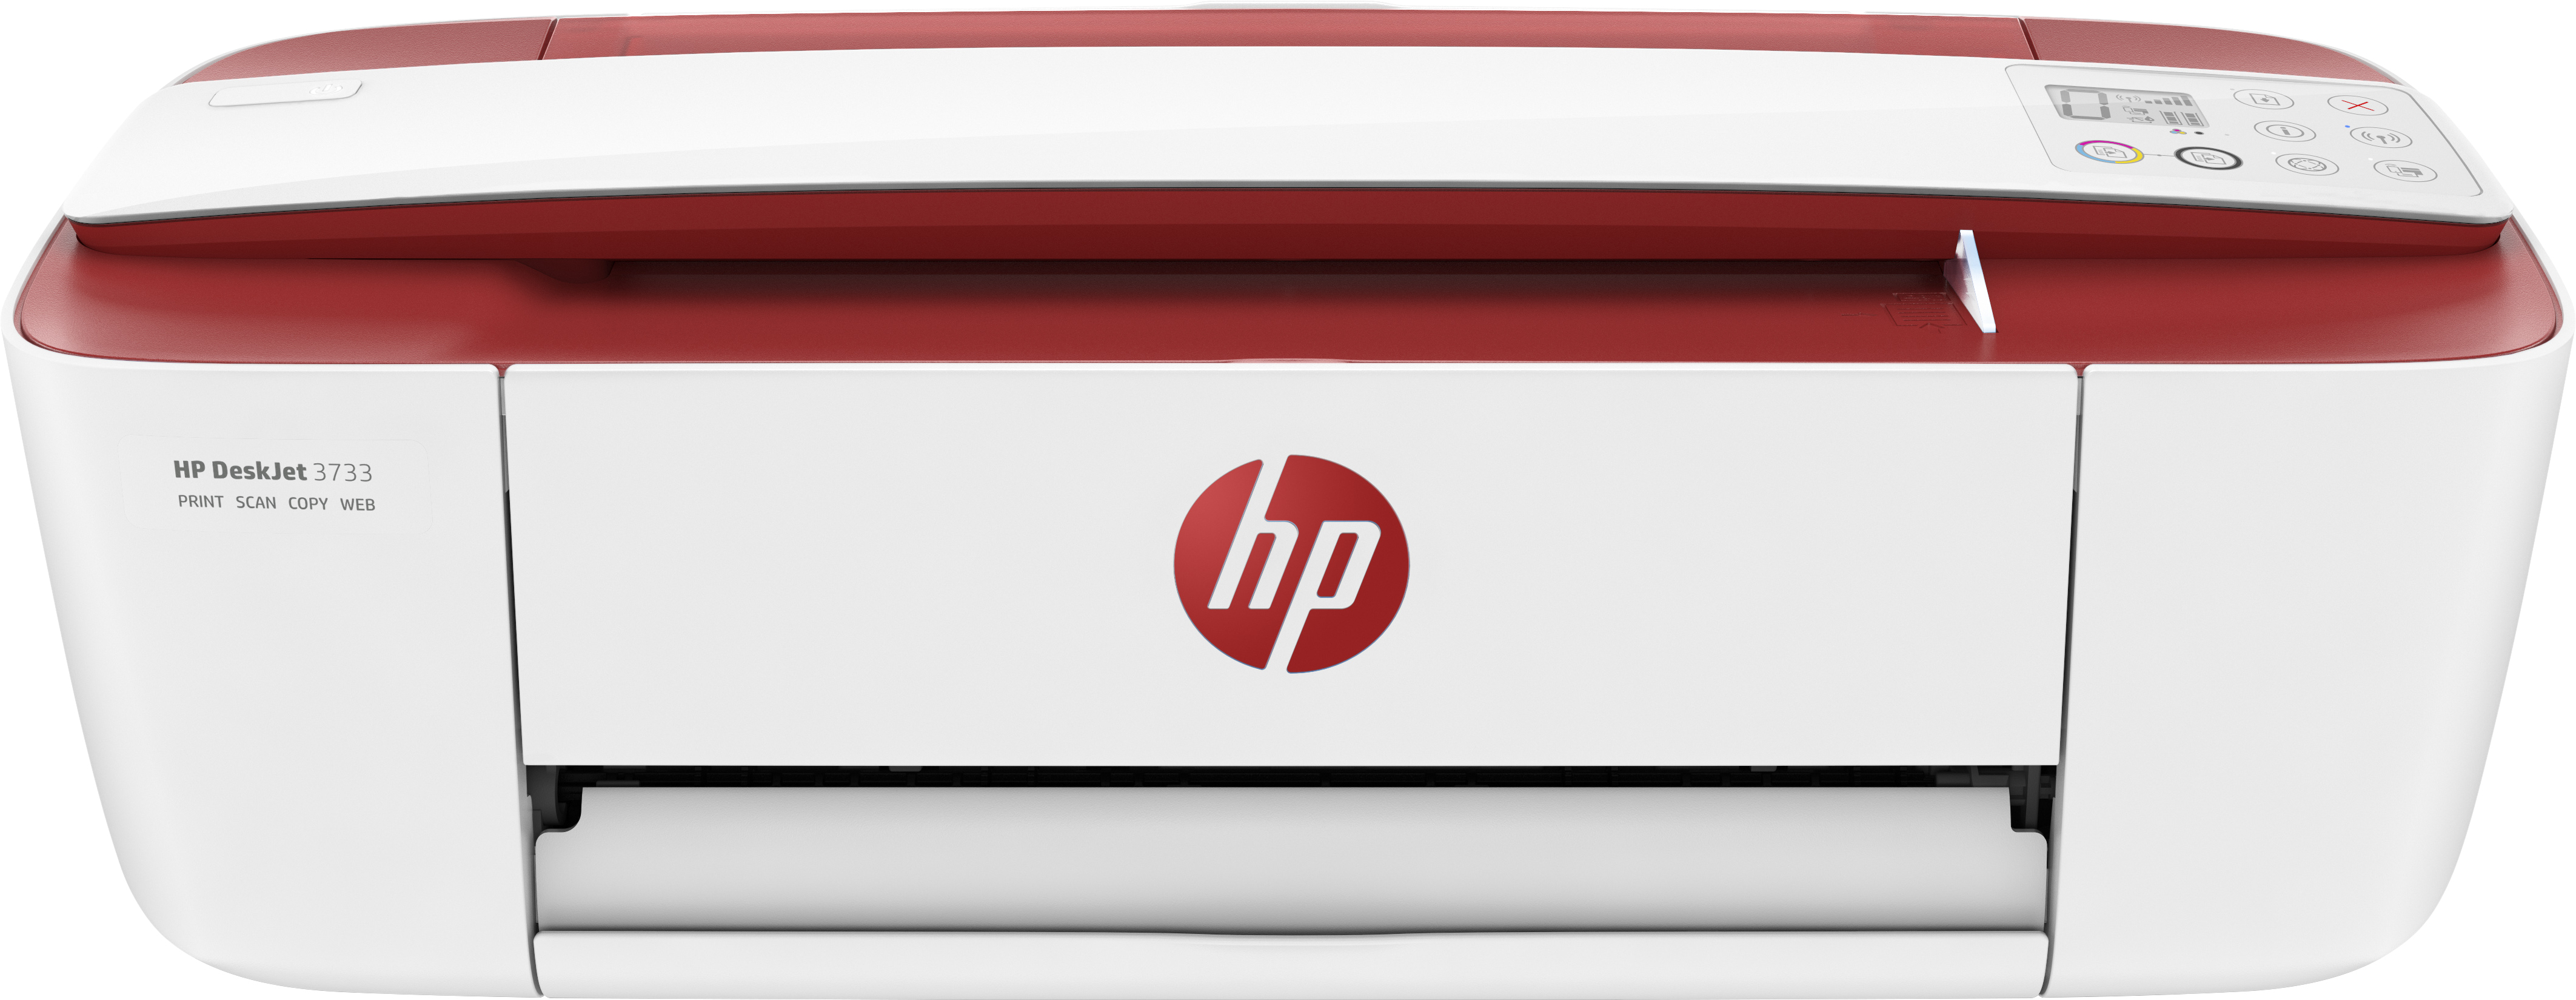 HP DeskJet 3733 All-in-One (Red) A4